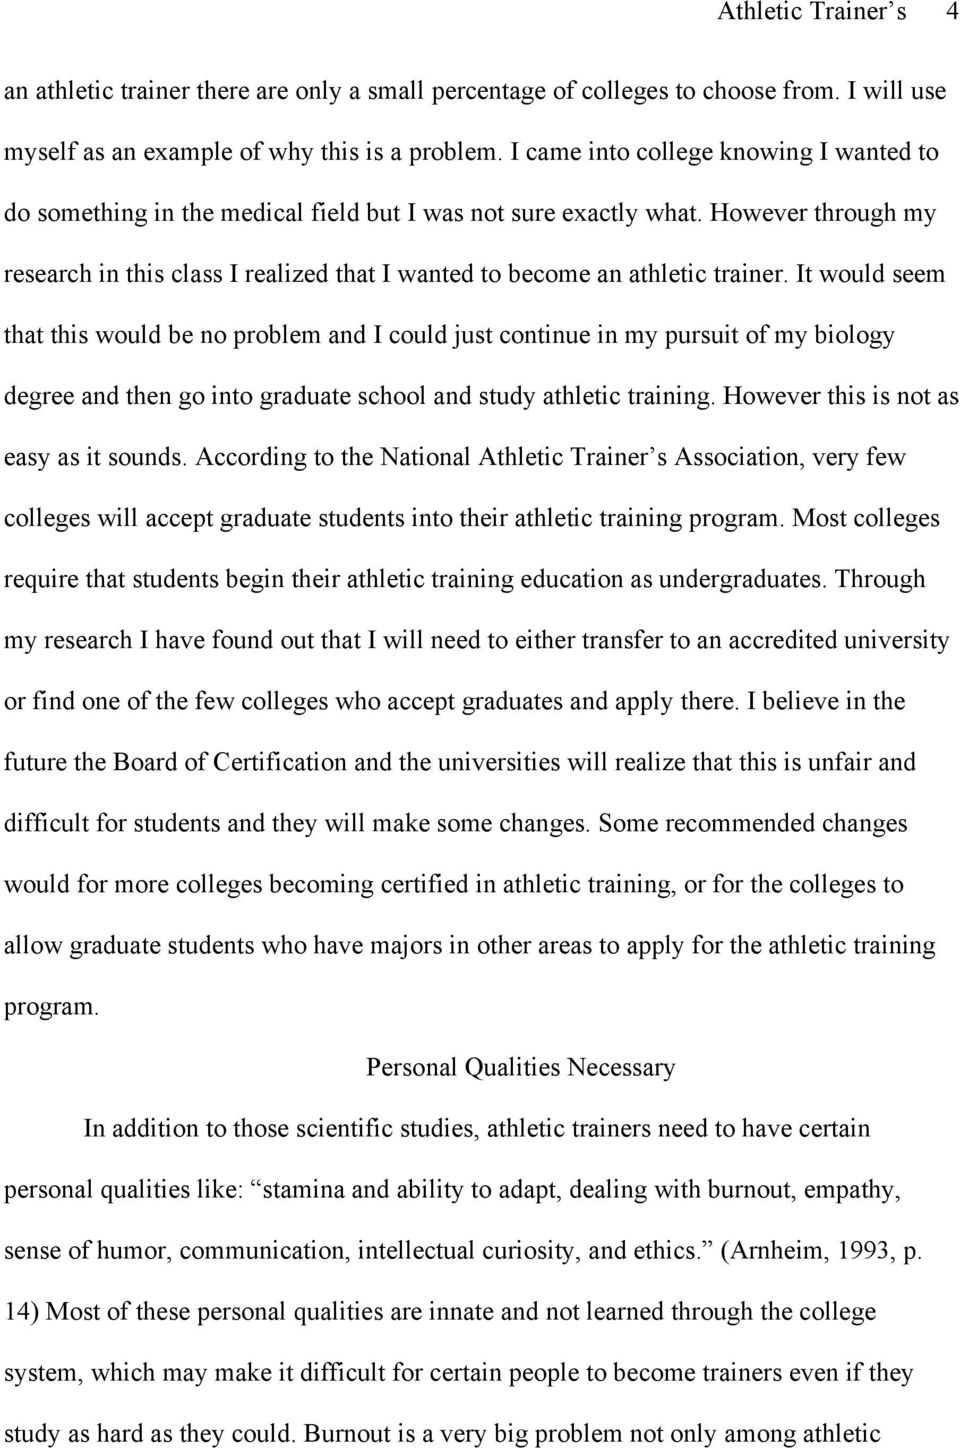 However through my research in this class I realized that I wanted to become an athletic trainer.